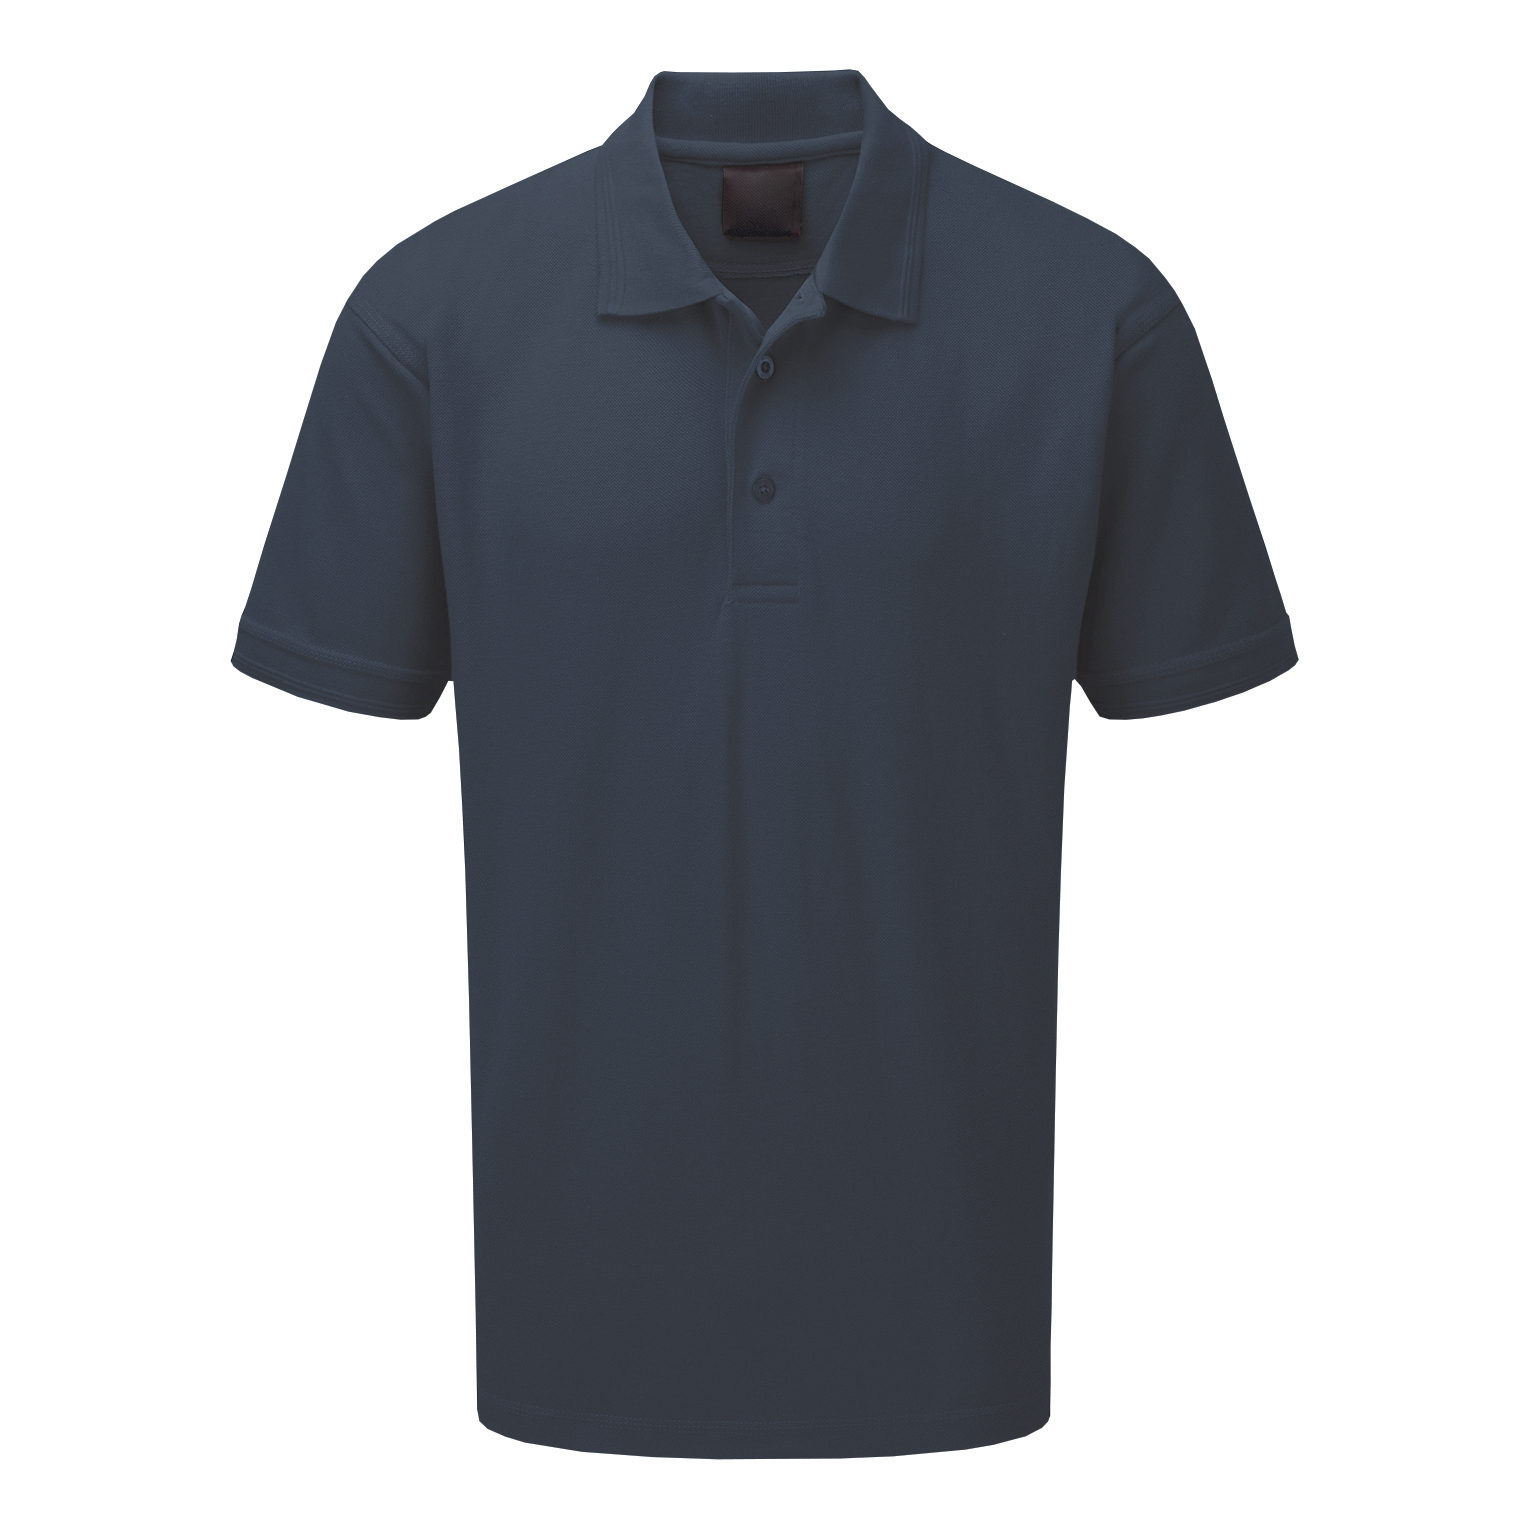 Business Polo Premium Triple Stitched Size 2XL Graphite